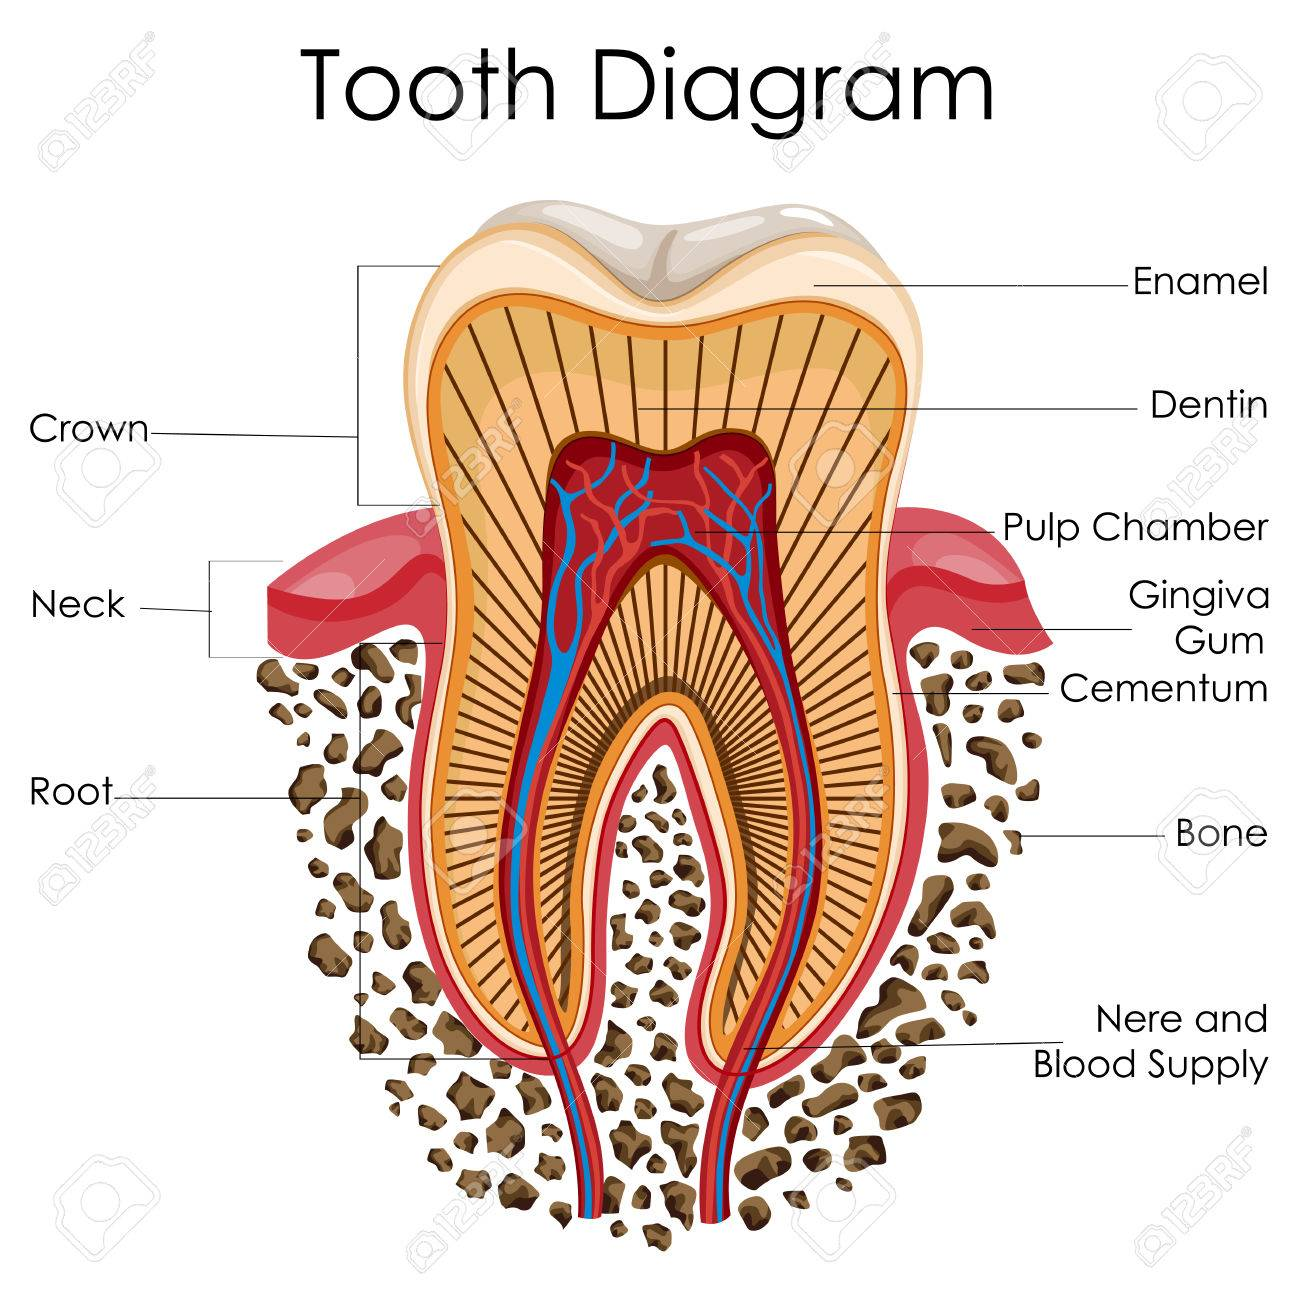 hight resolution of medical education chart of biology for tooth anatomy diagram stock vector 79719060